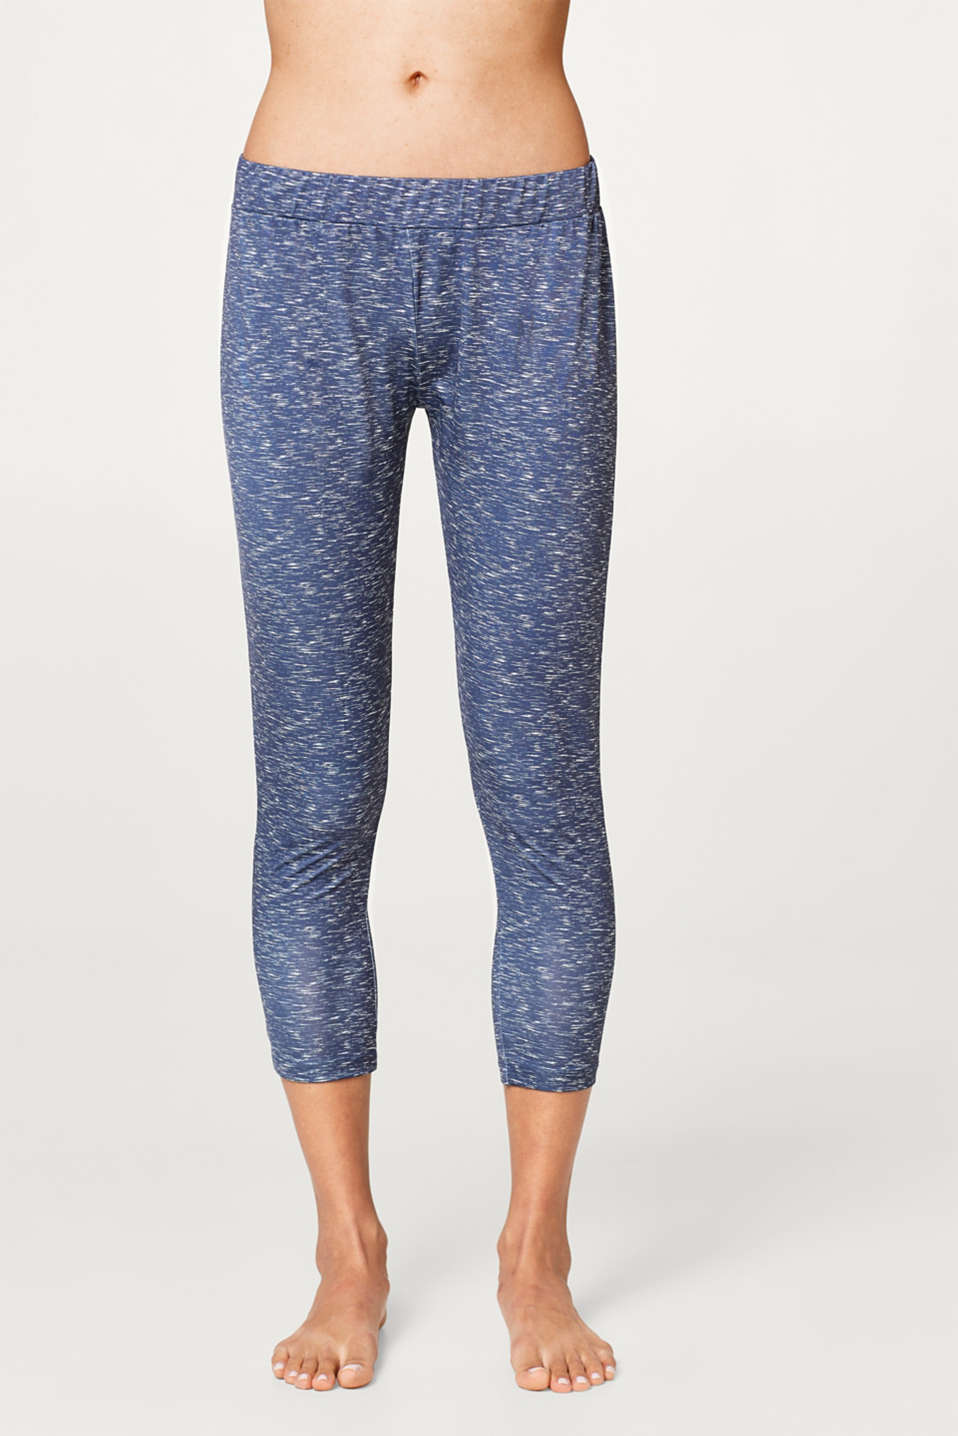 Esprit - 7/8 leggings with a melange print